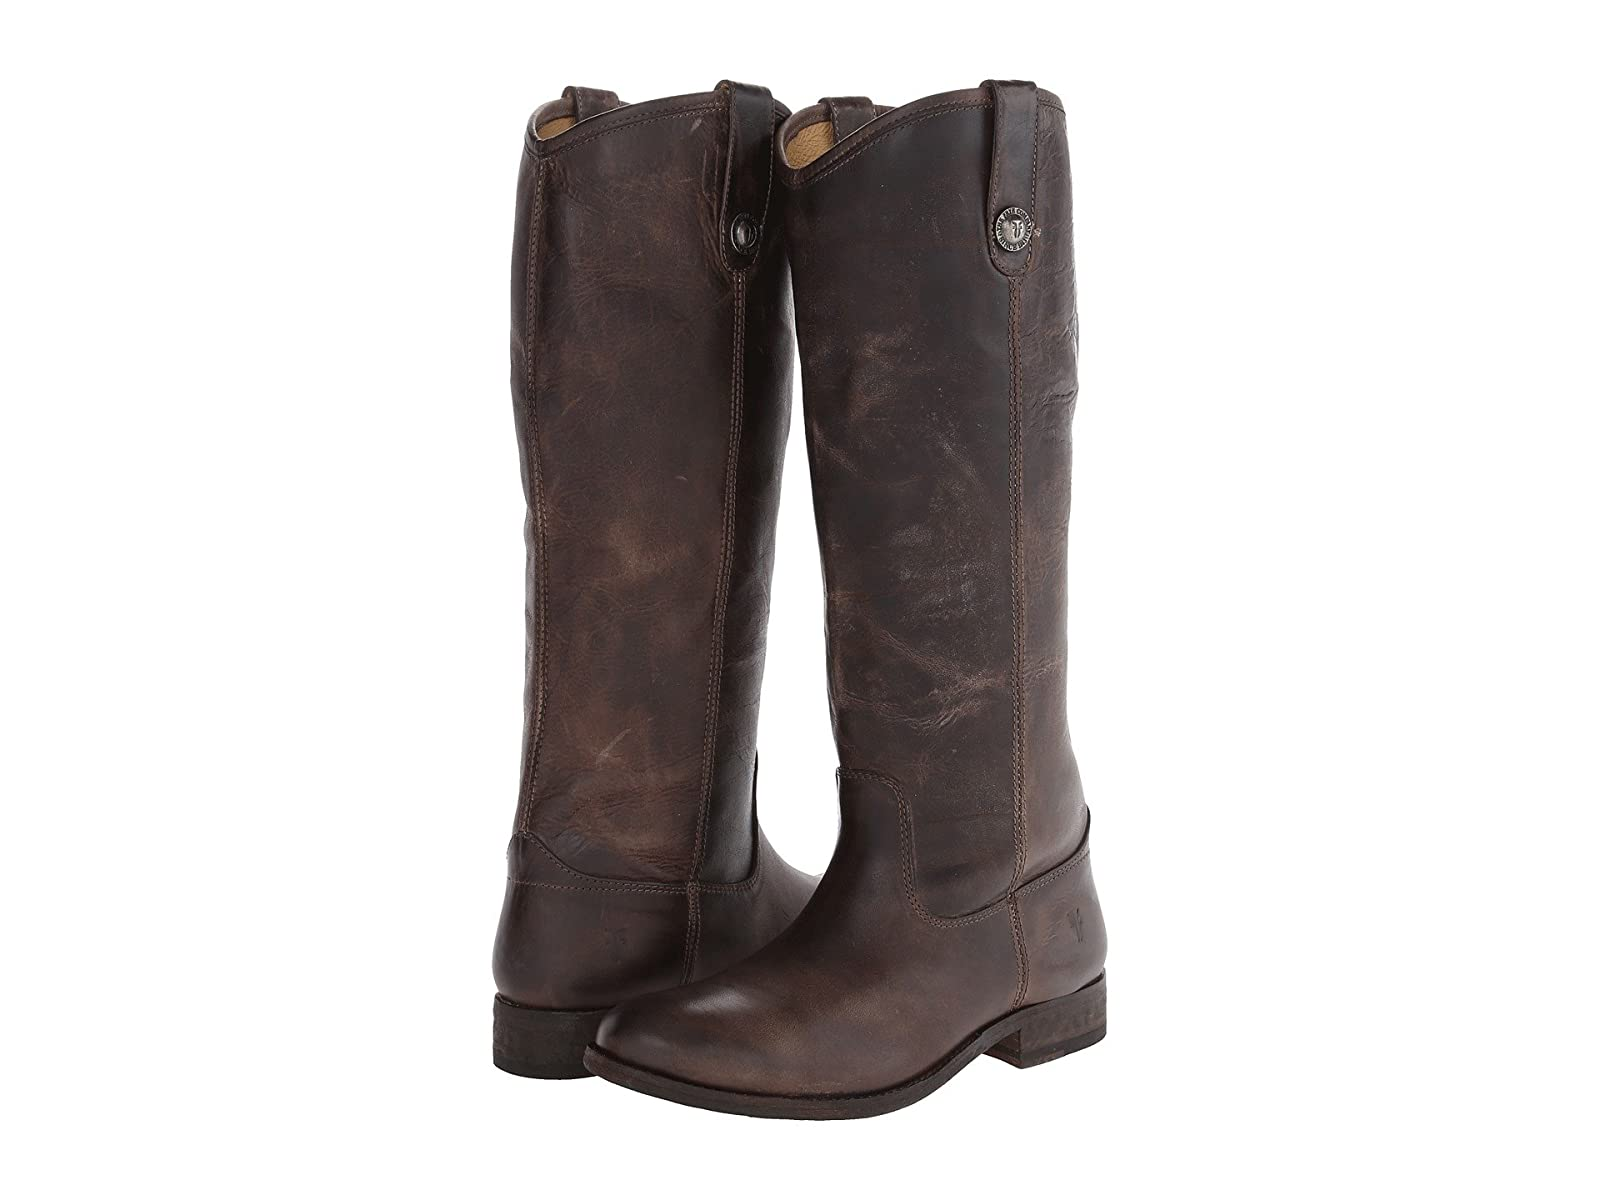 Frye Melissa ButtonCheap and distinctive eye-catching shoes